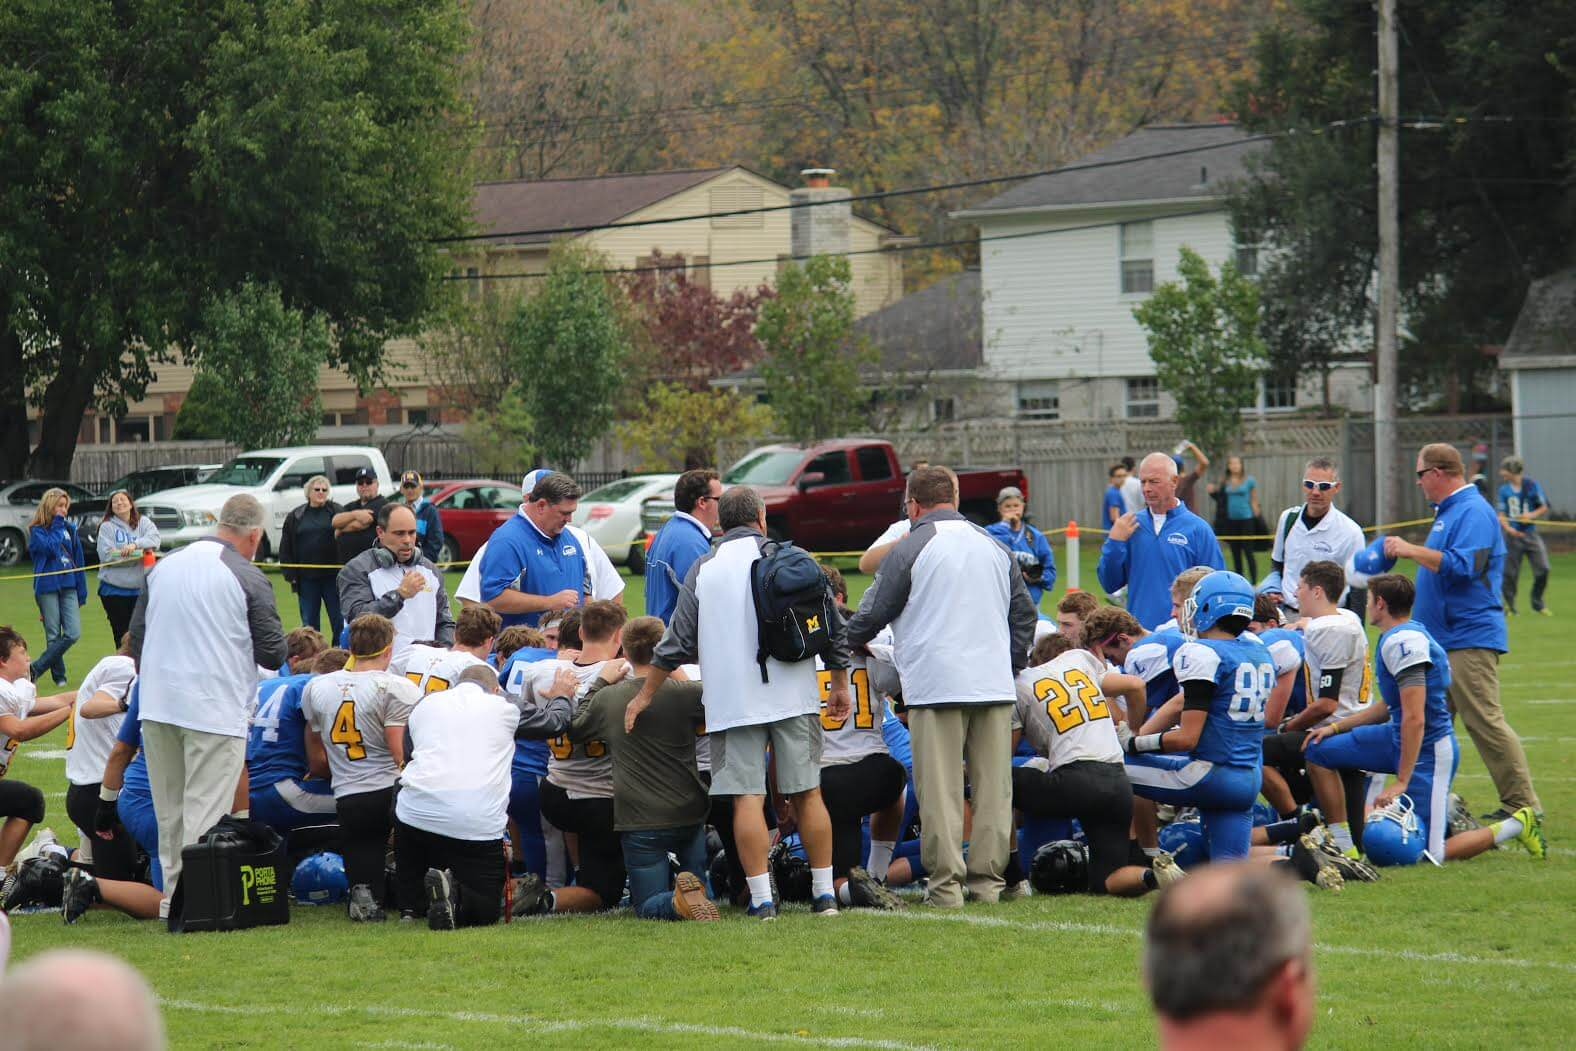 Both teams pray together after the game.